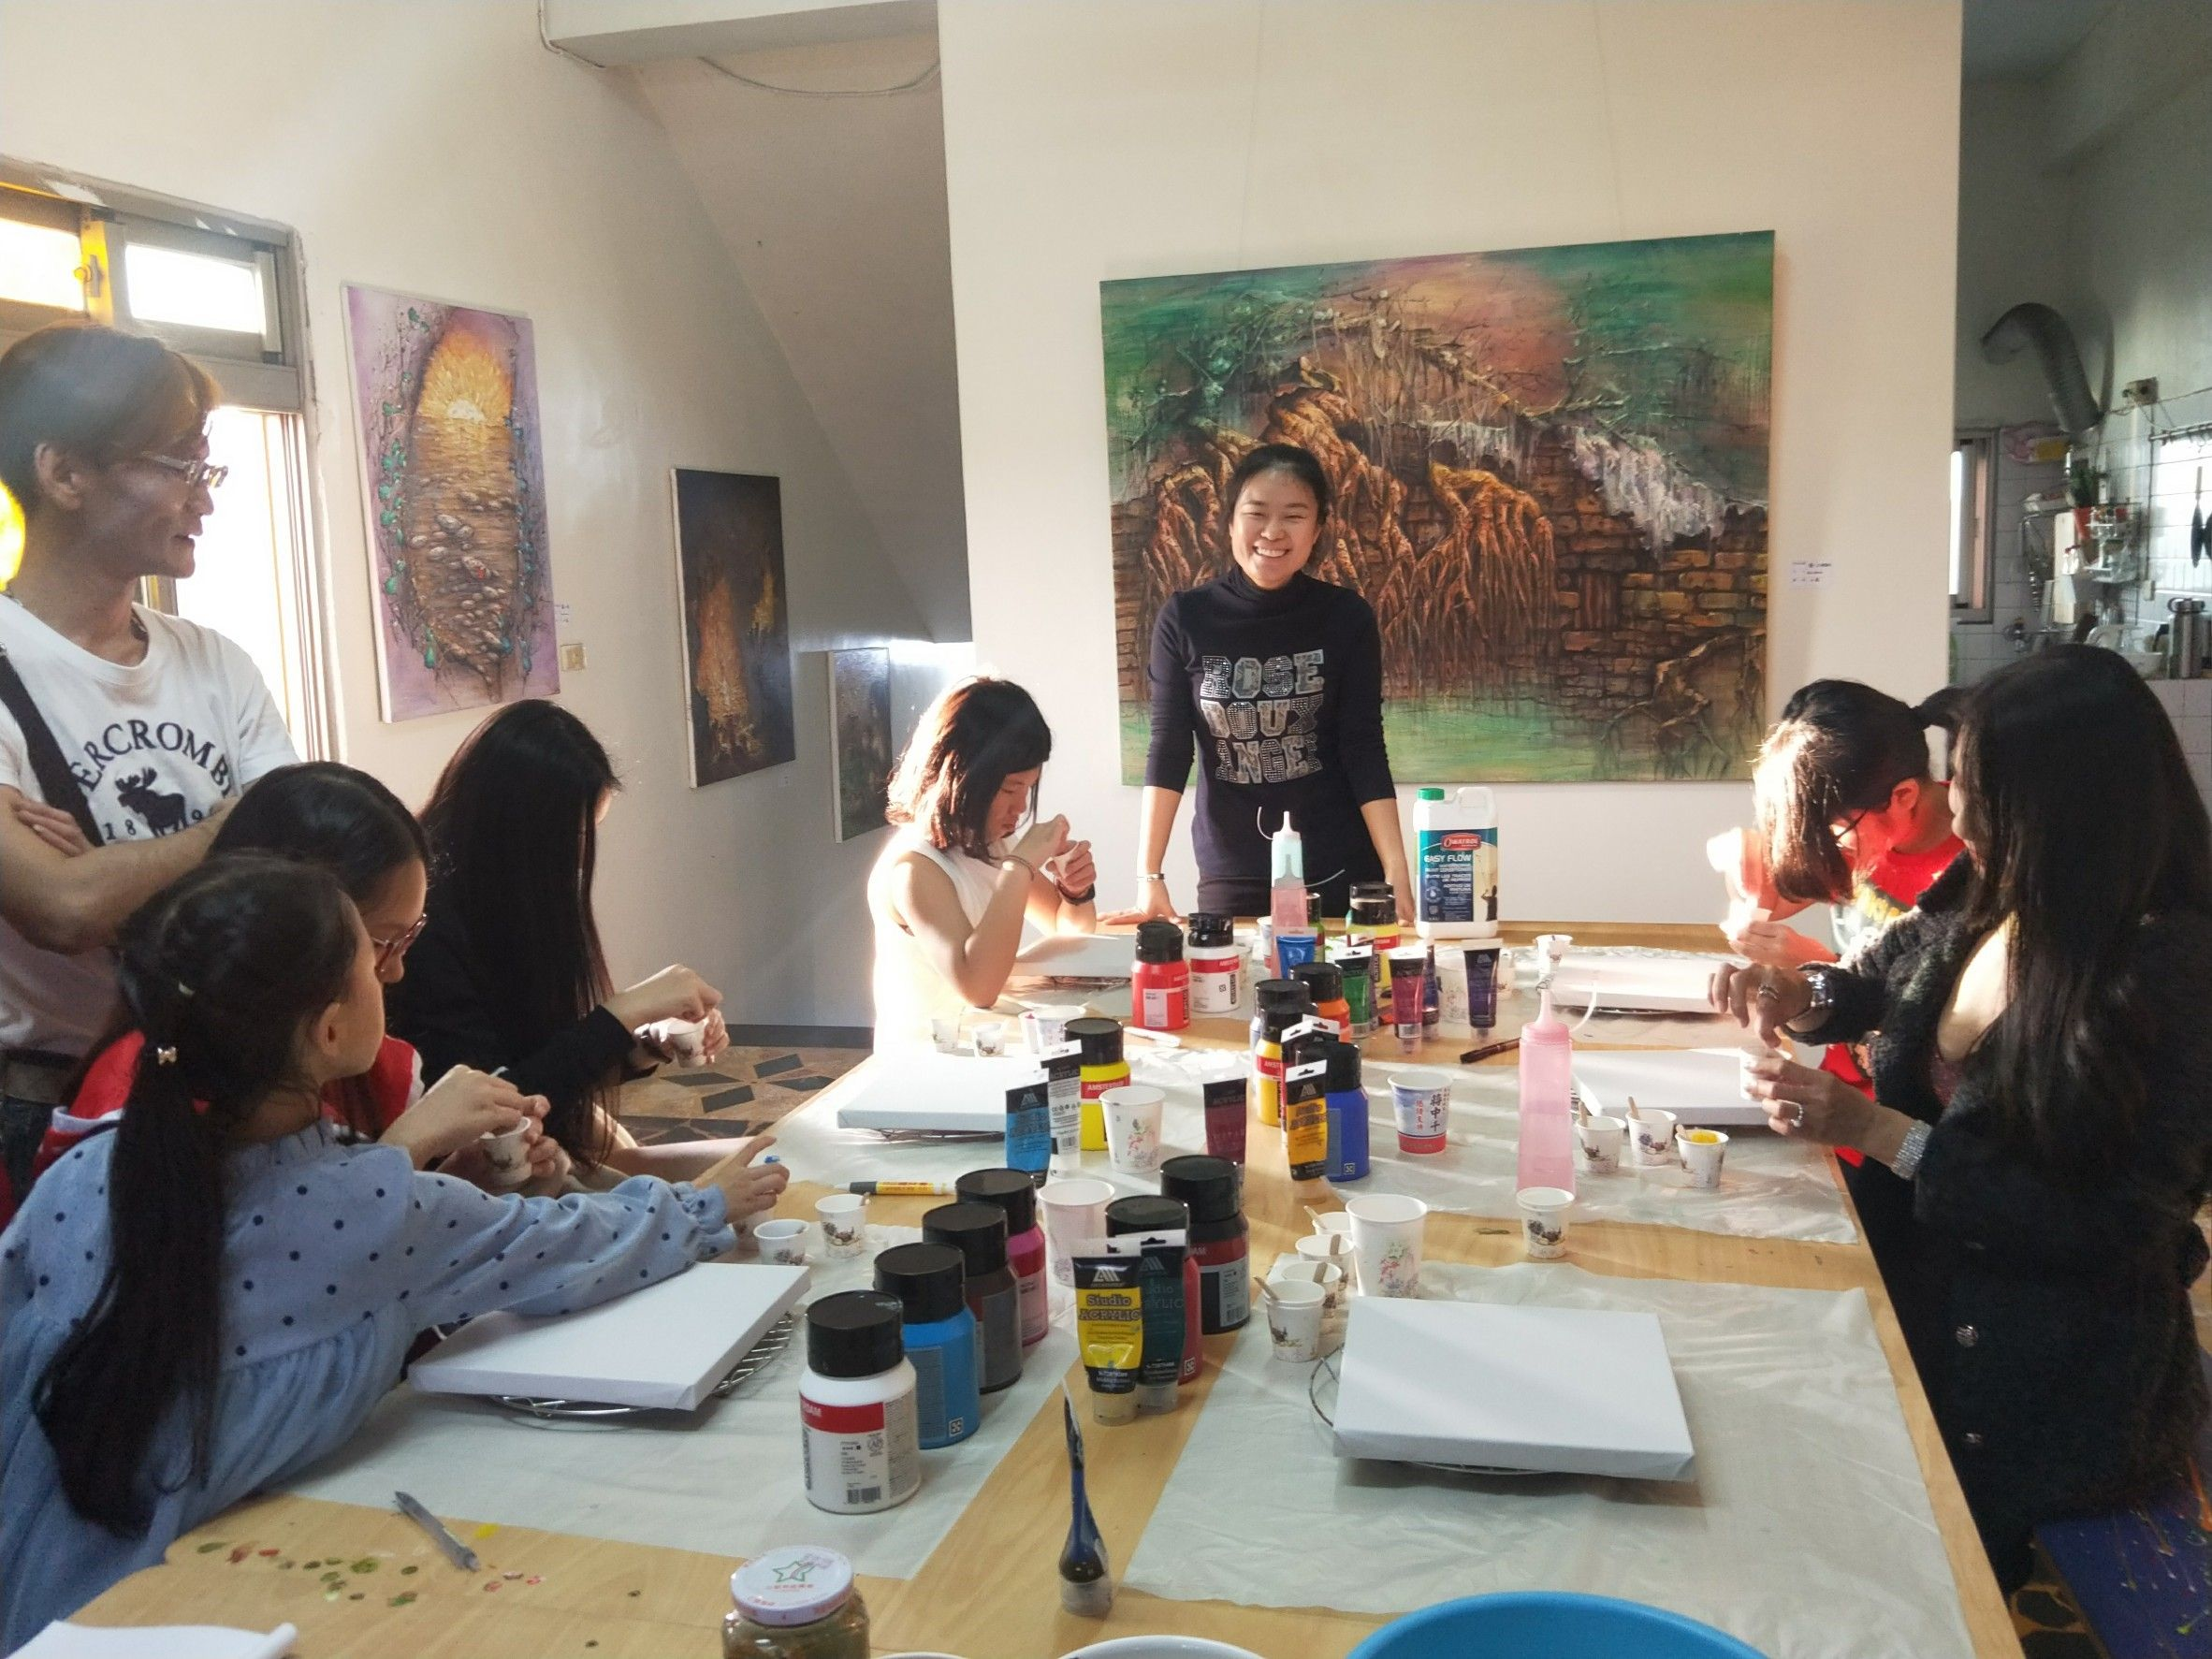 The students starting the art class